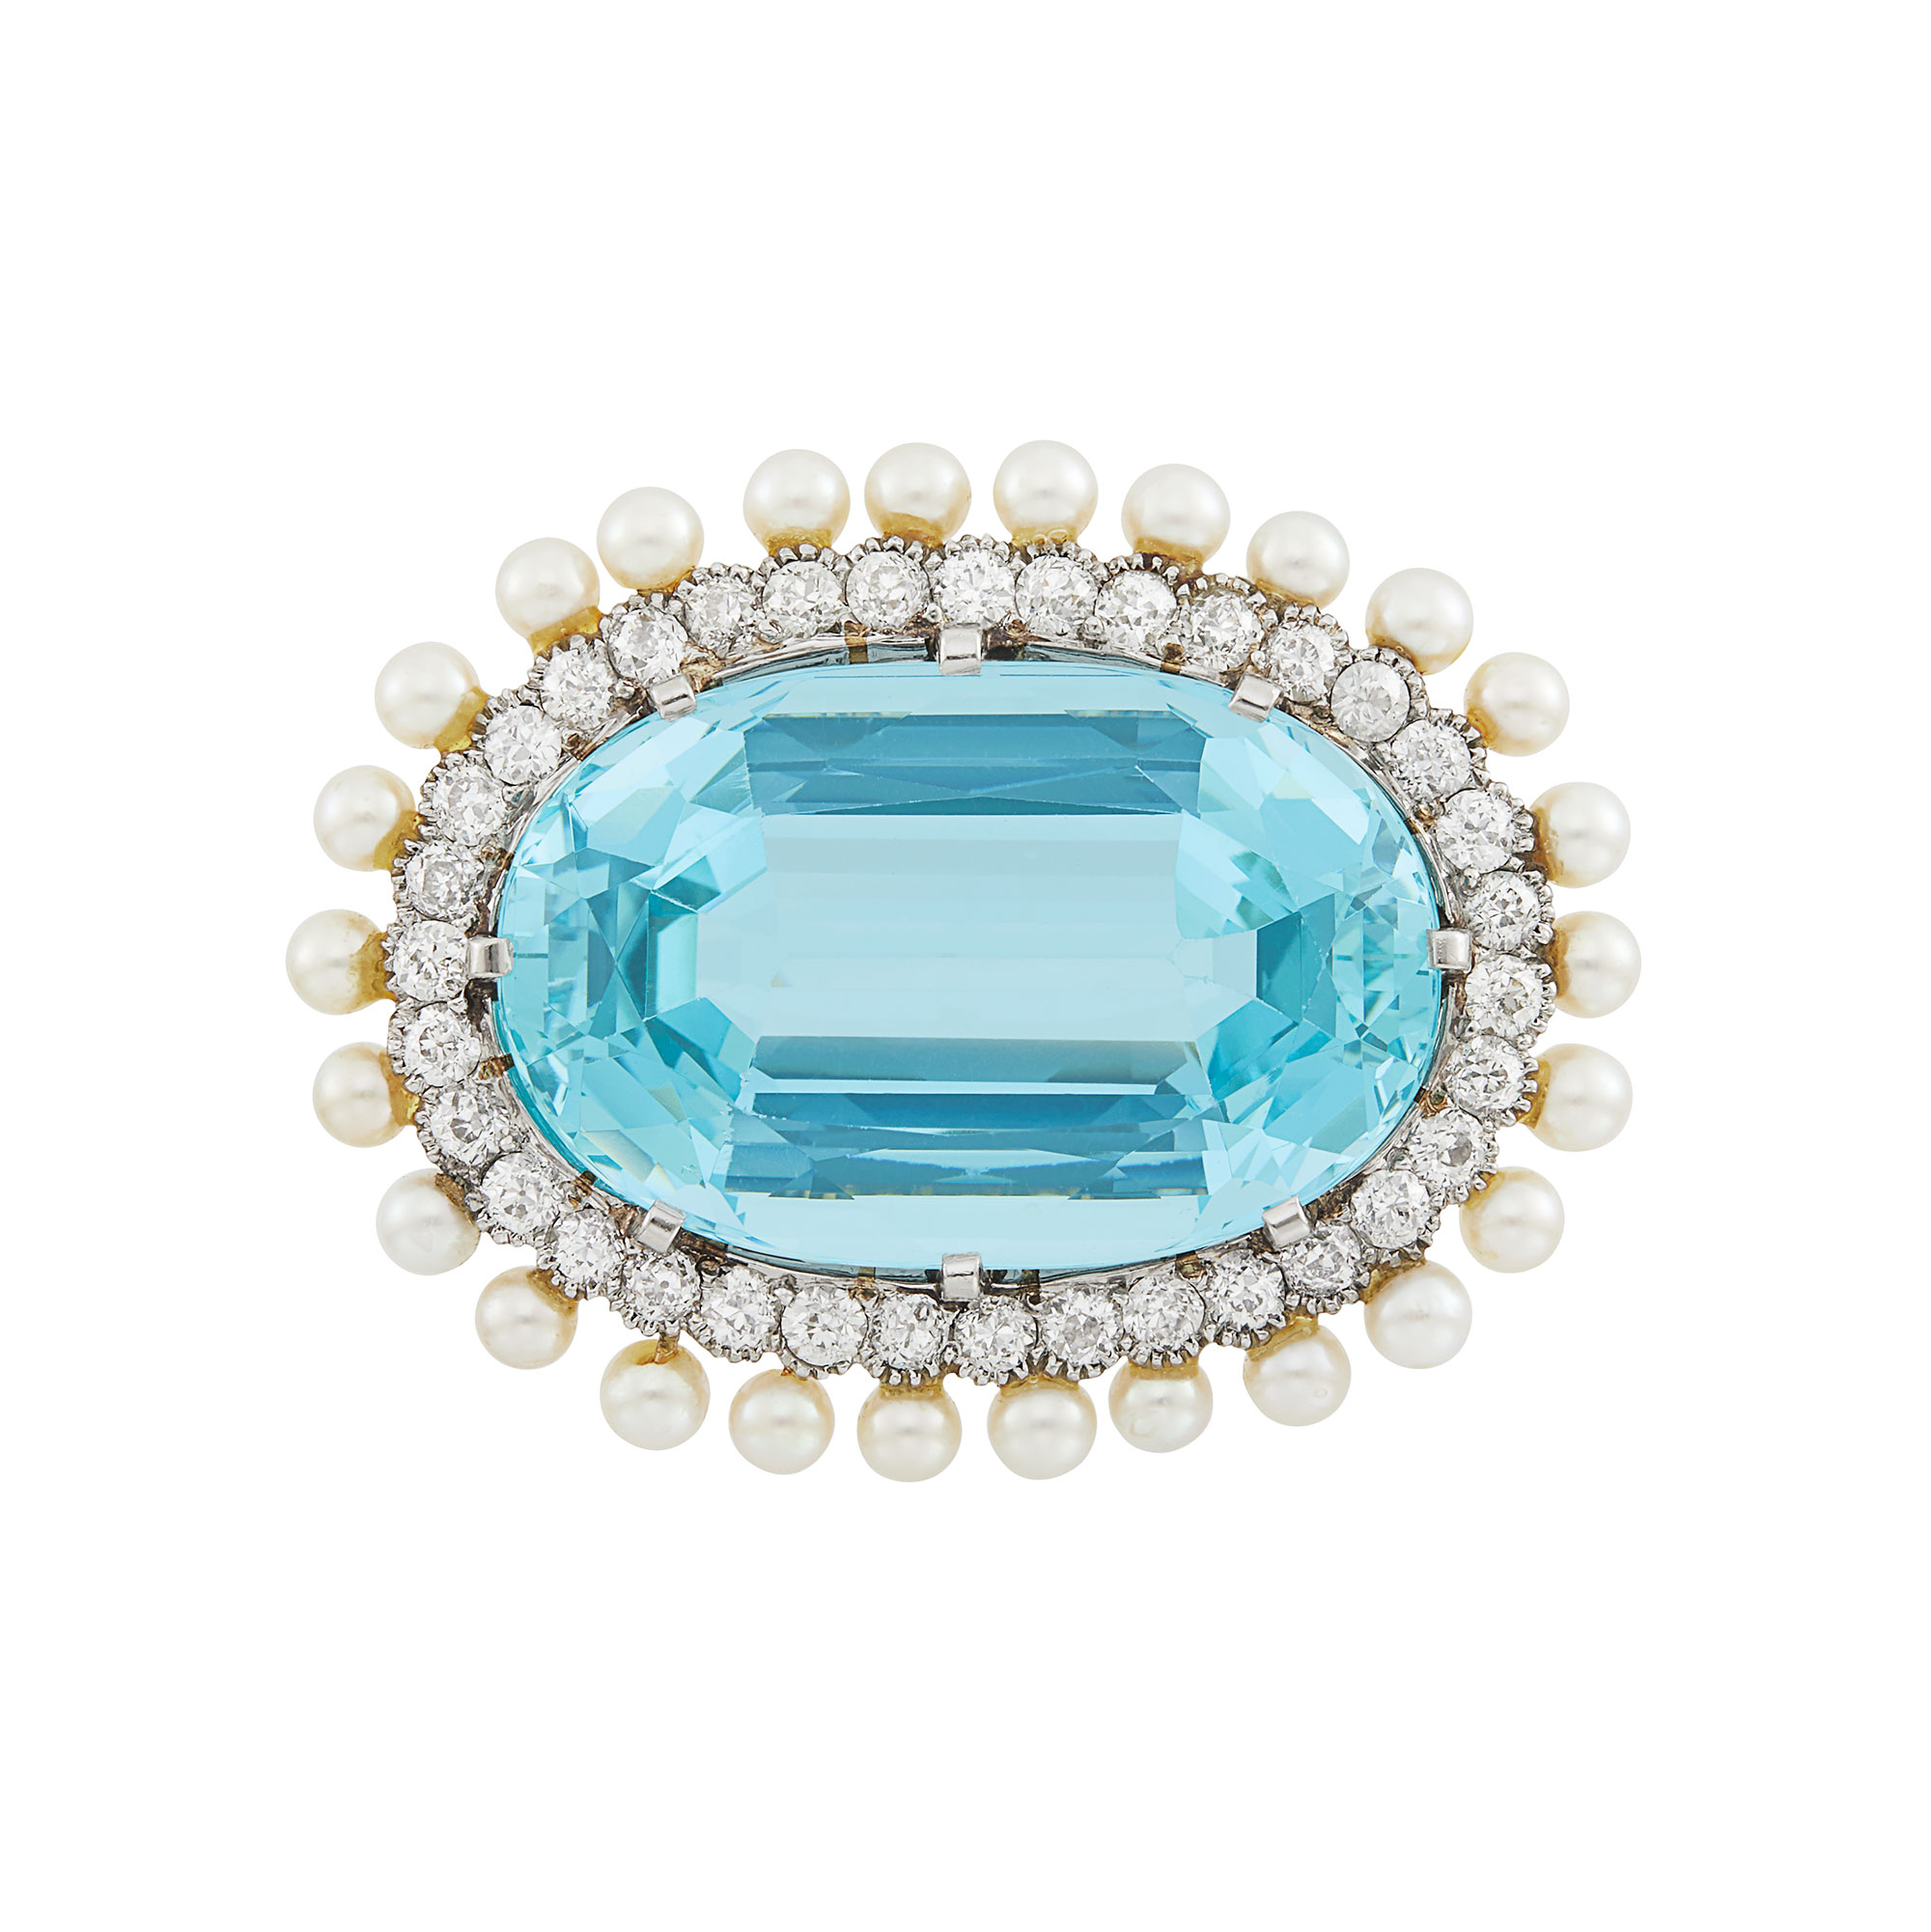 Lot image - Platinum, Gold, Aquamarine, Diamond and Pearl Brooch, Marcus & Co.